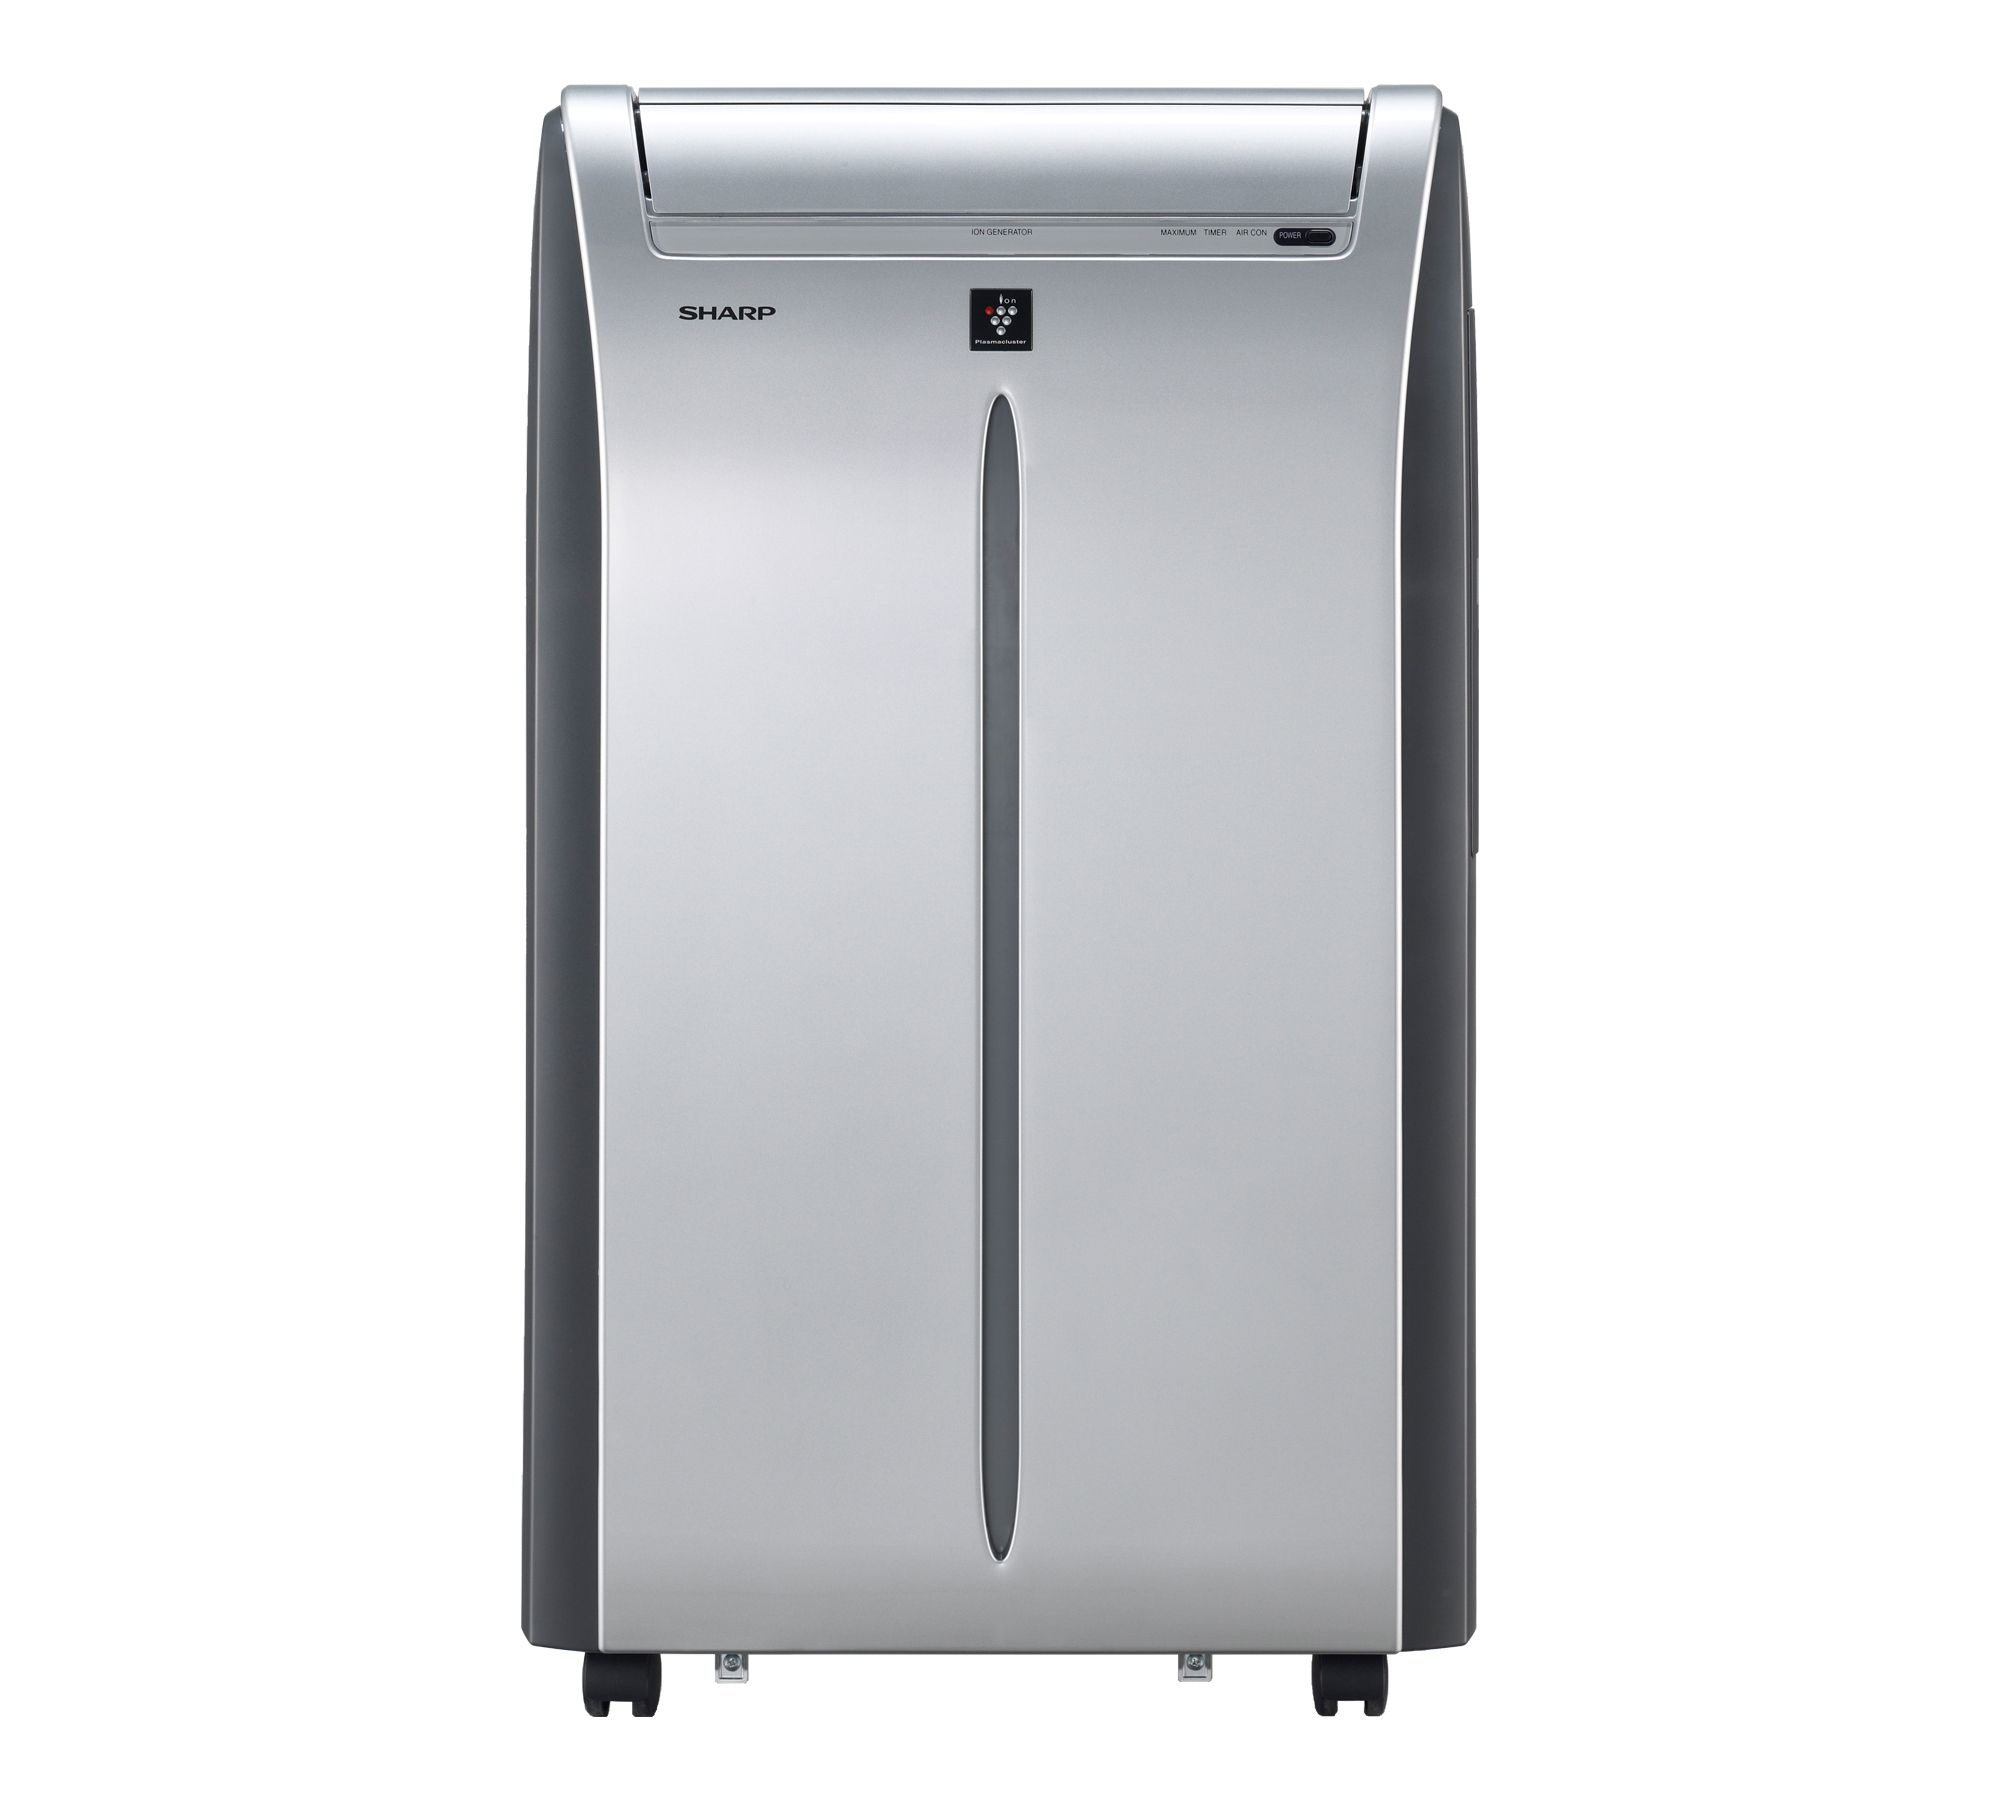 Local Air Conditioner TypeCool Only Capacity Cool (kW)2